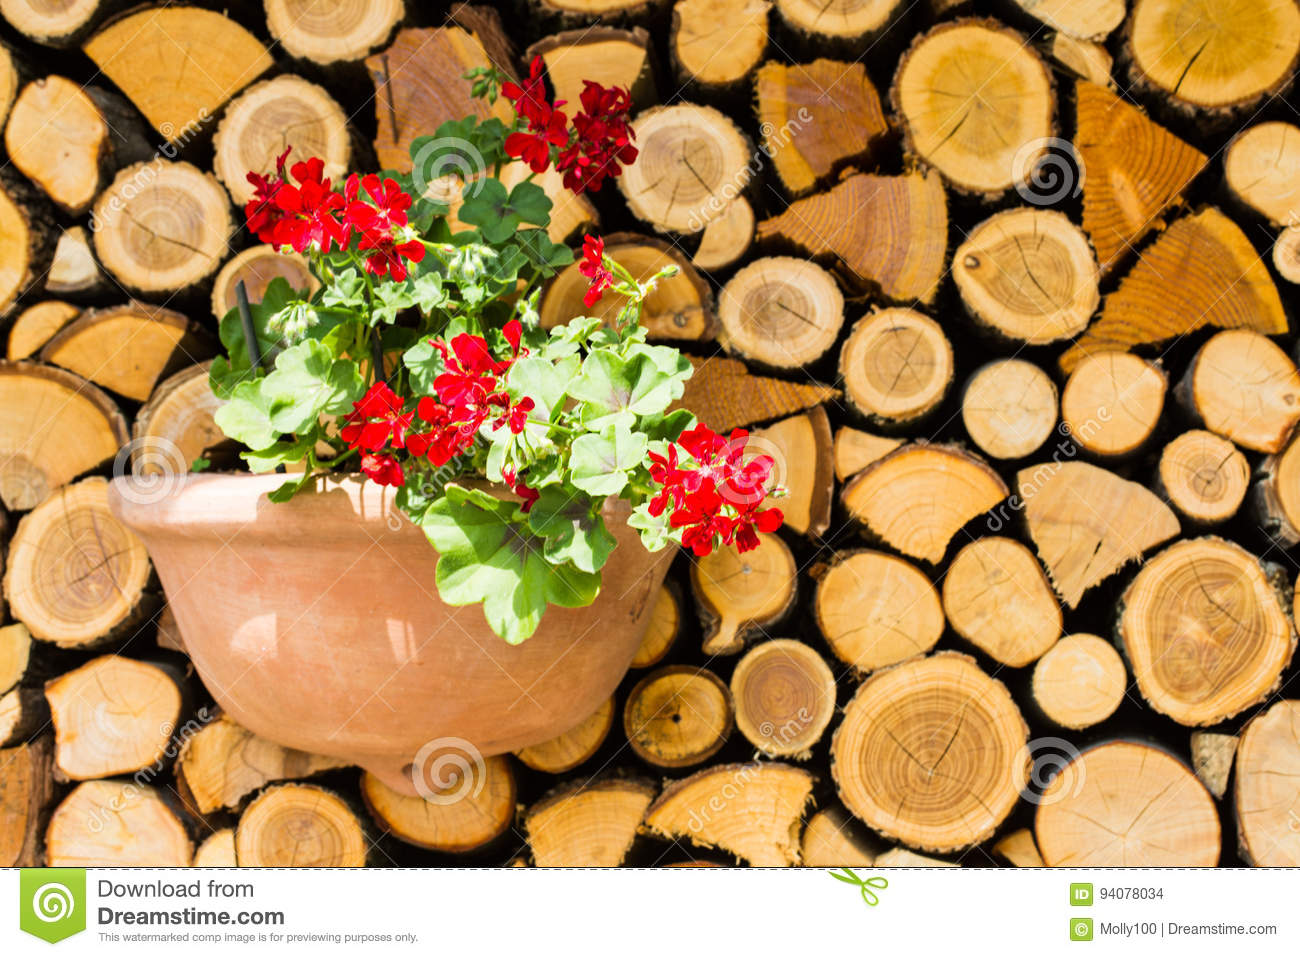 Wooden board, wooden pile with flowers, decoration